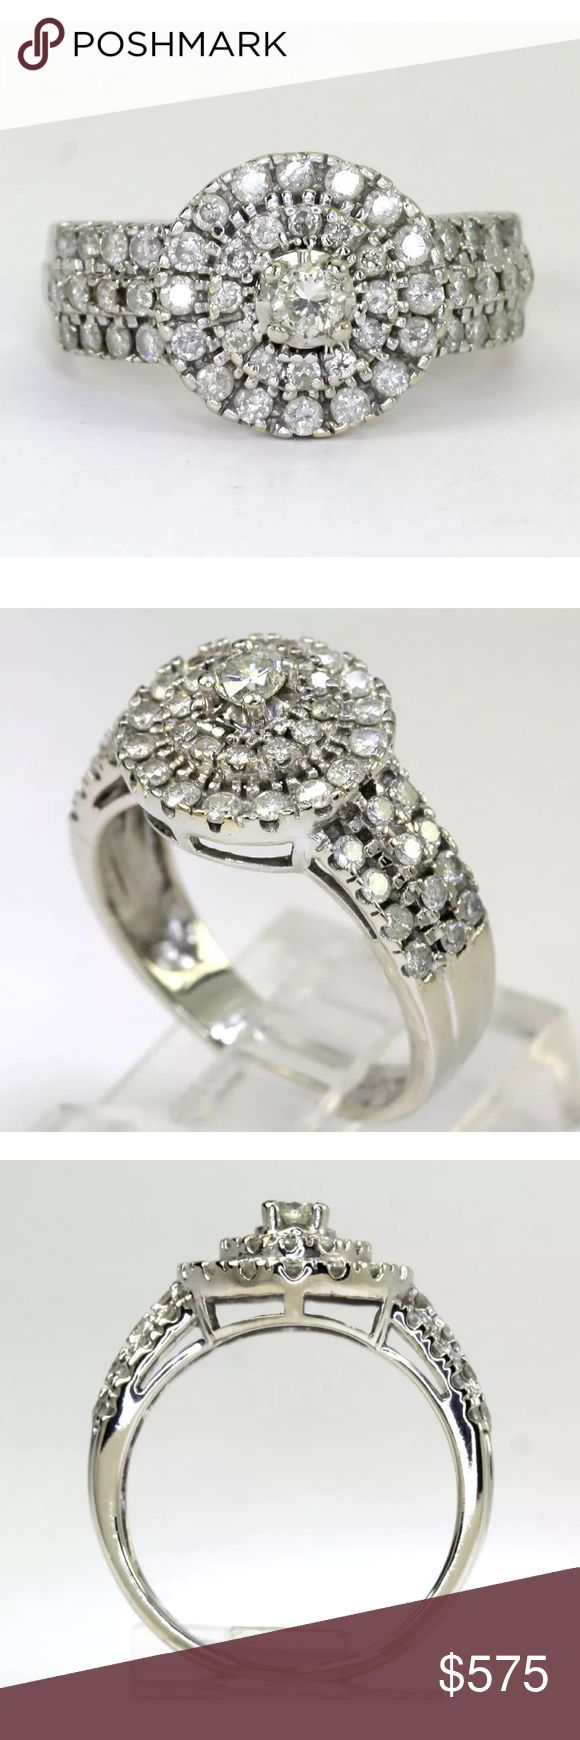 1.25 carat 14k white gold diamond halo ring 1.25 carat 14k white gold diamond halo ring OC Tanner Jewelry Rings